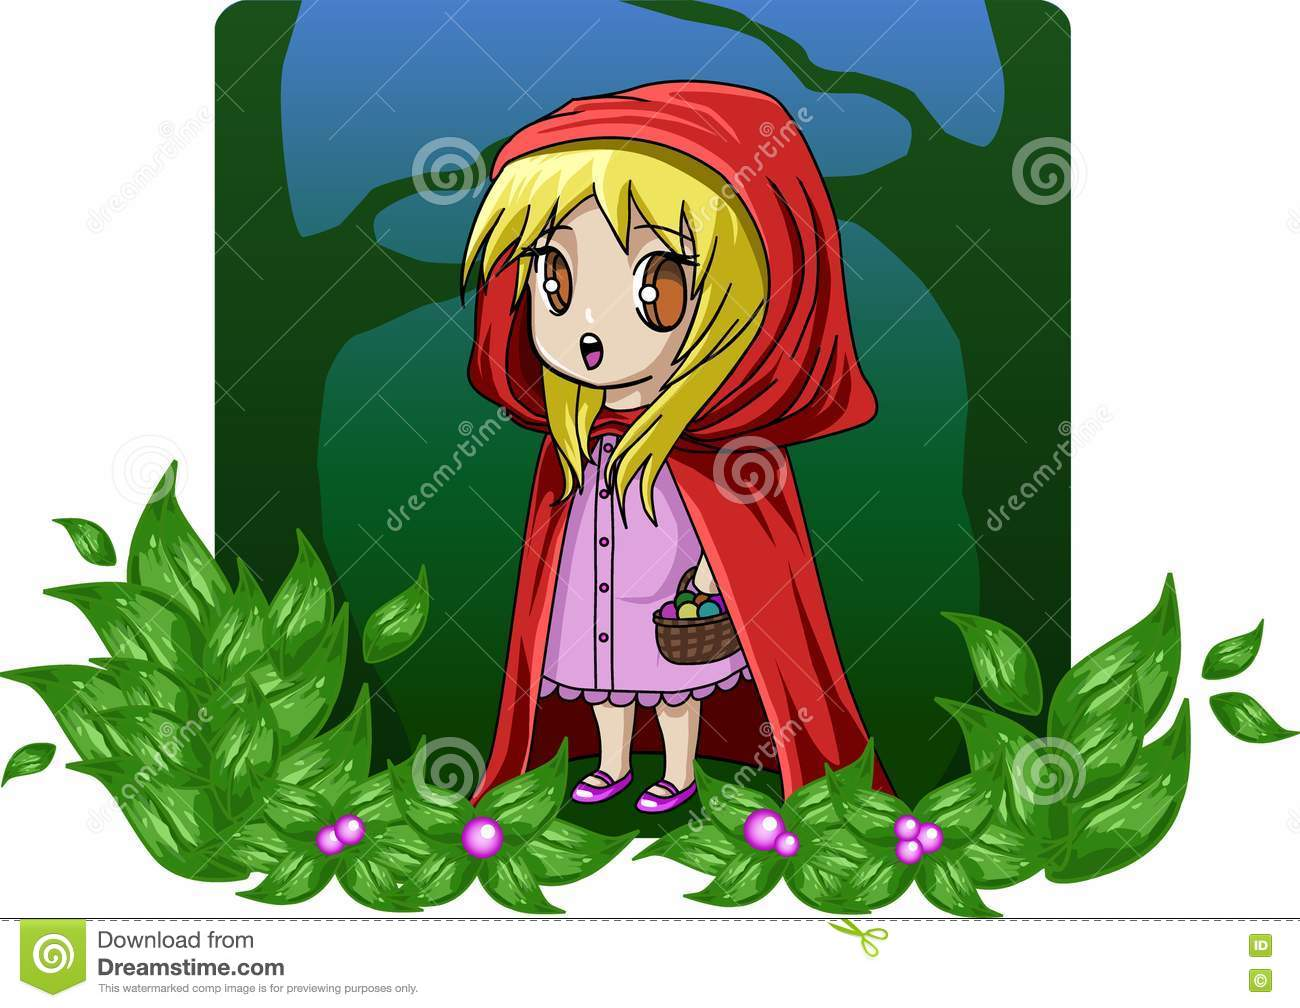 girls room chair wood outdoor classic children's stories - red riding hood stock illustration image: 17212703